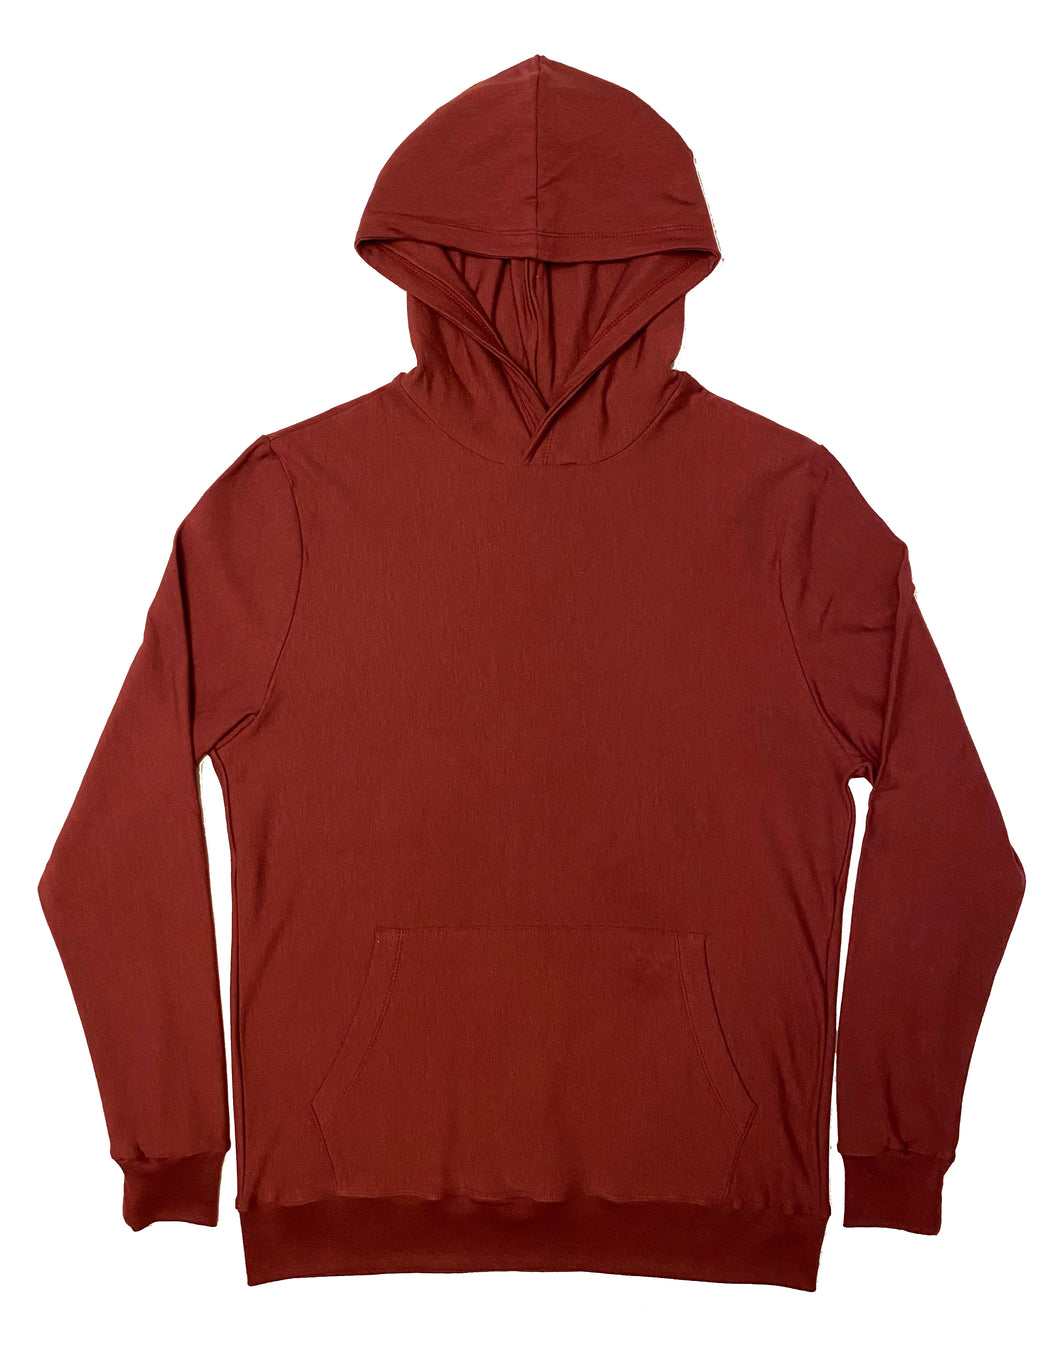 Unisex Hooded Sweatshirt - Berry